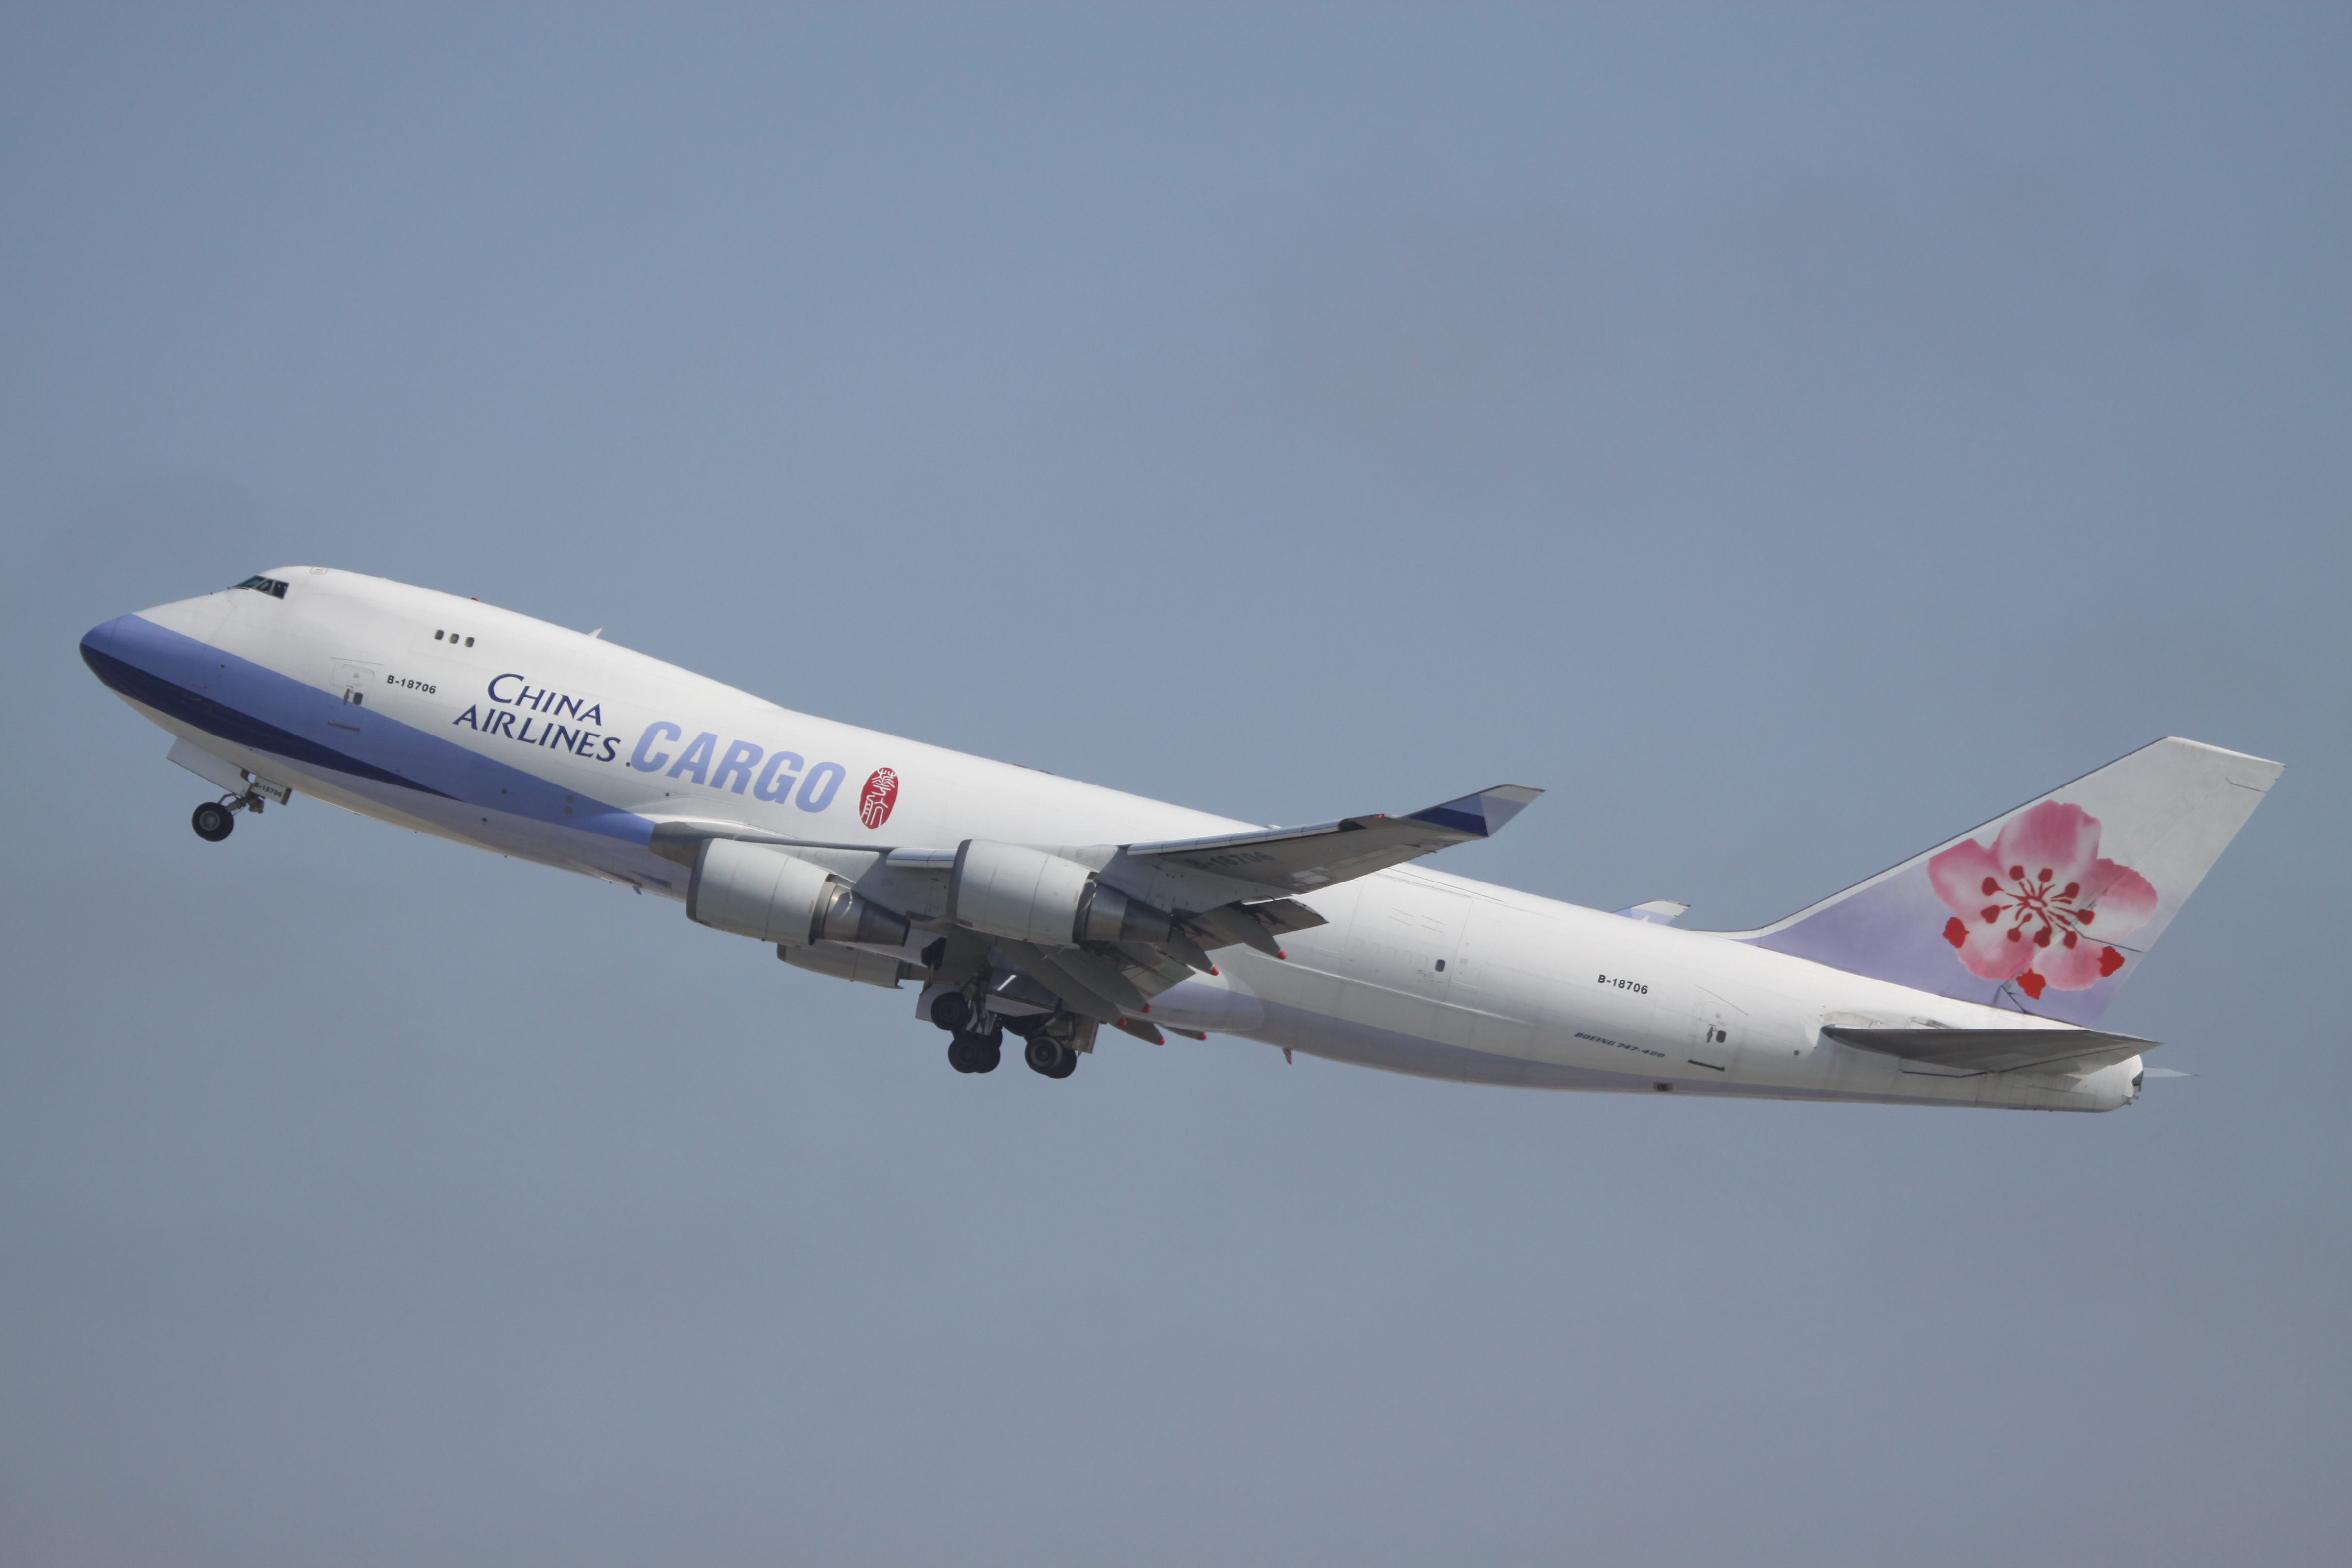 File:B-9 Boeing 9F China Airlines Cargo (9).jpg